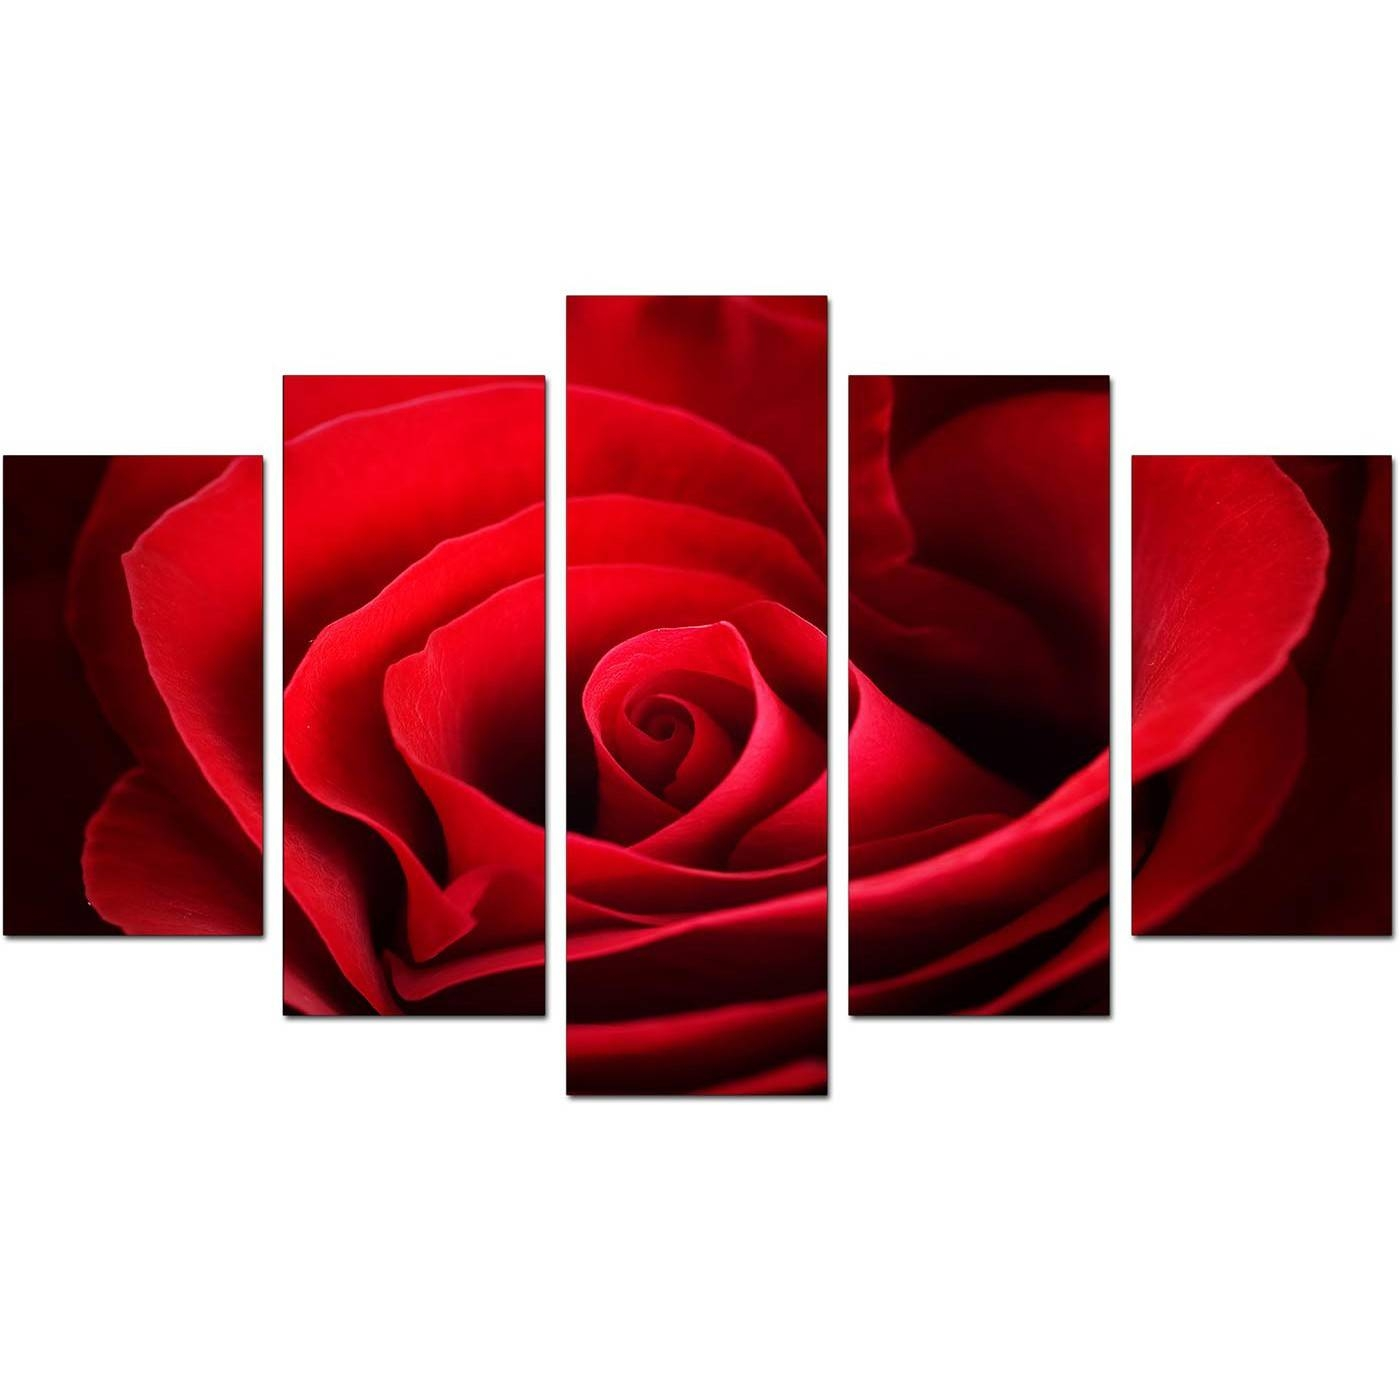 Extra Large Rose Canvas Wall Art 5 Panel In Red Pertaining To Most Popular Red Rose Wall Art (View 4 of 20)